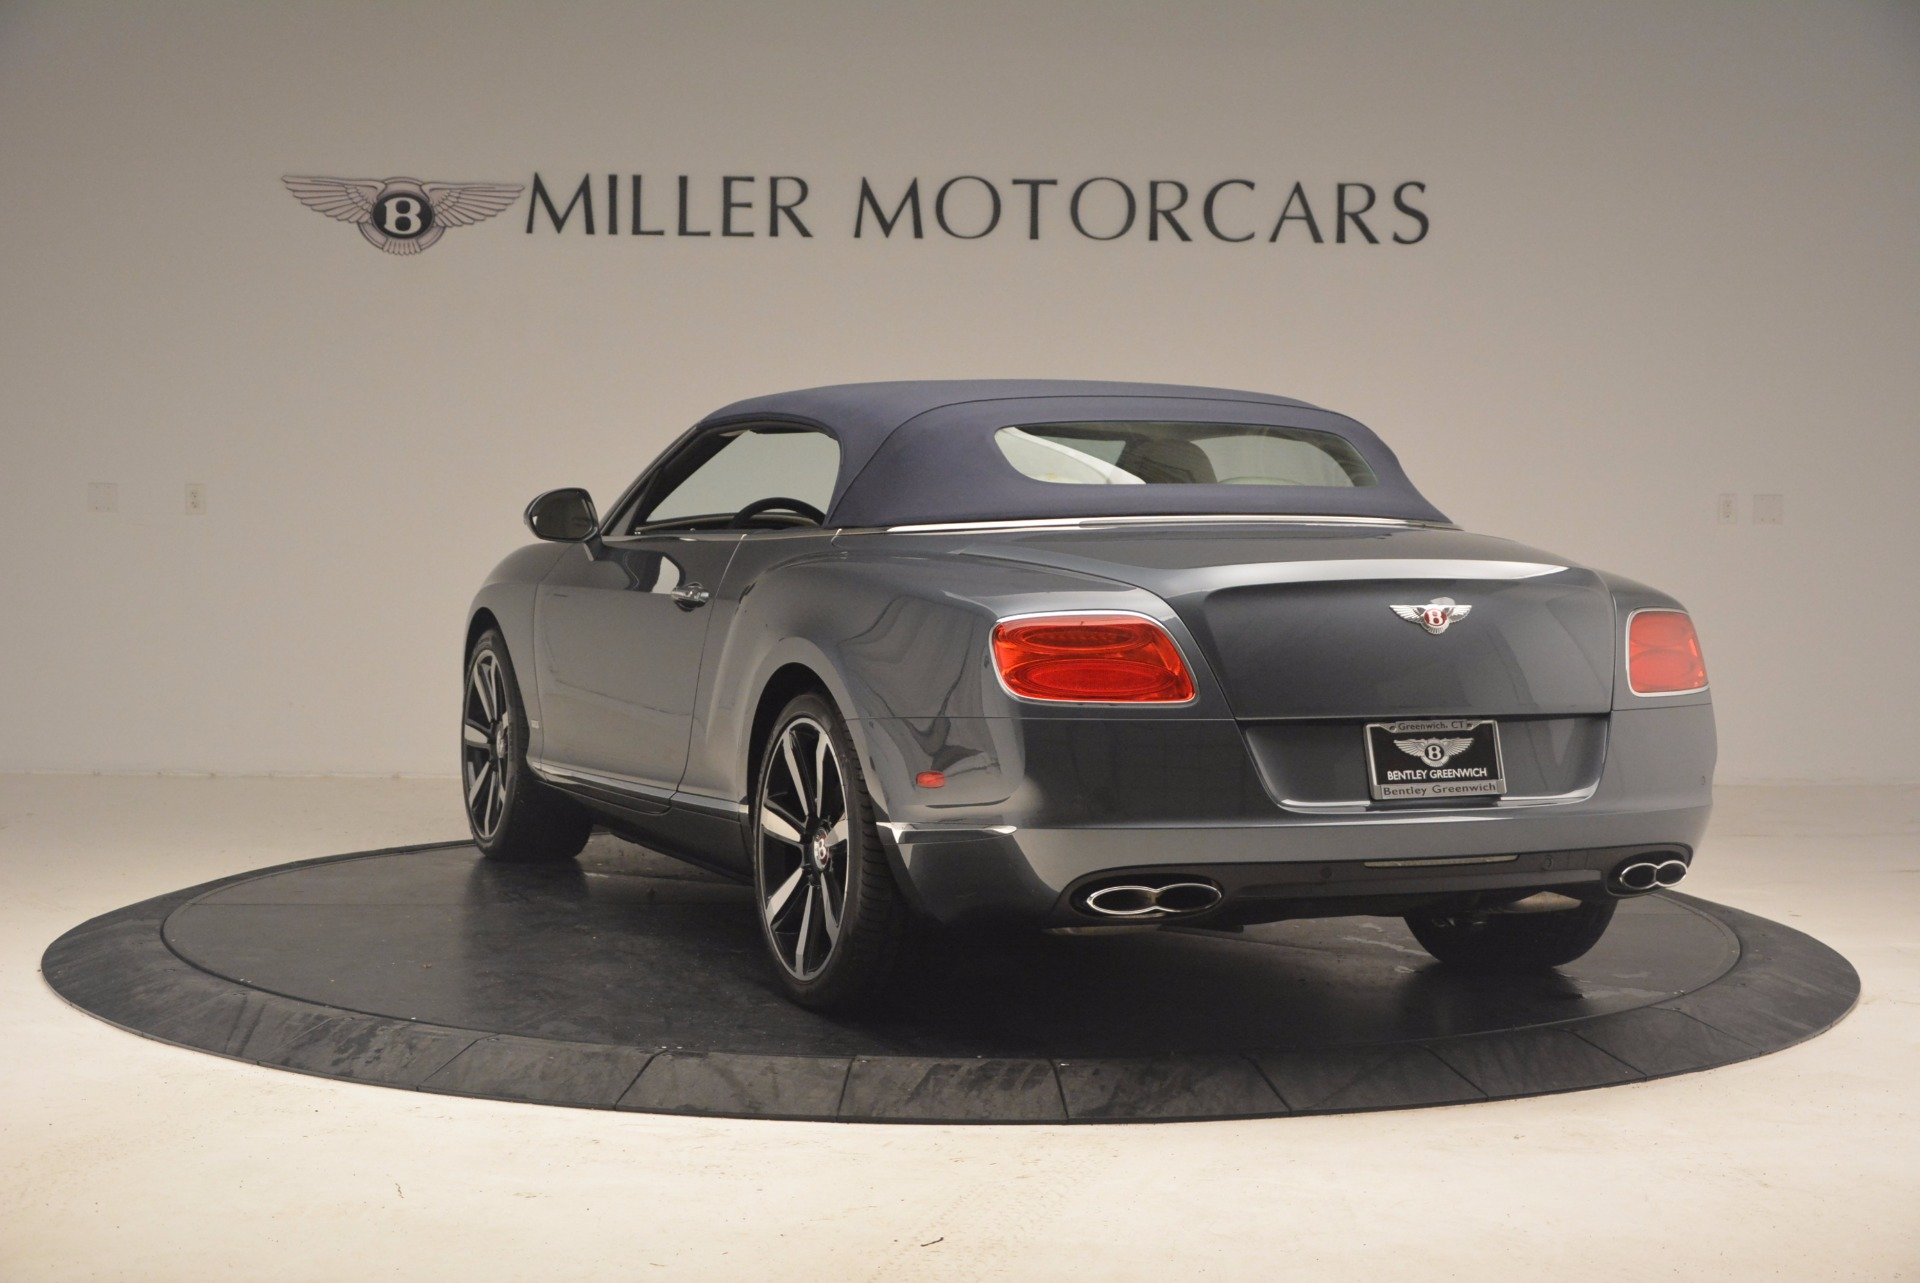 Used 2013 Bentley Continental GT V8 Le Mans Edition, 1 of 48 For Sale In Greenwich, CT 1288_p18